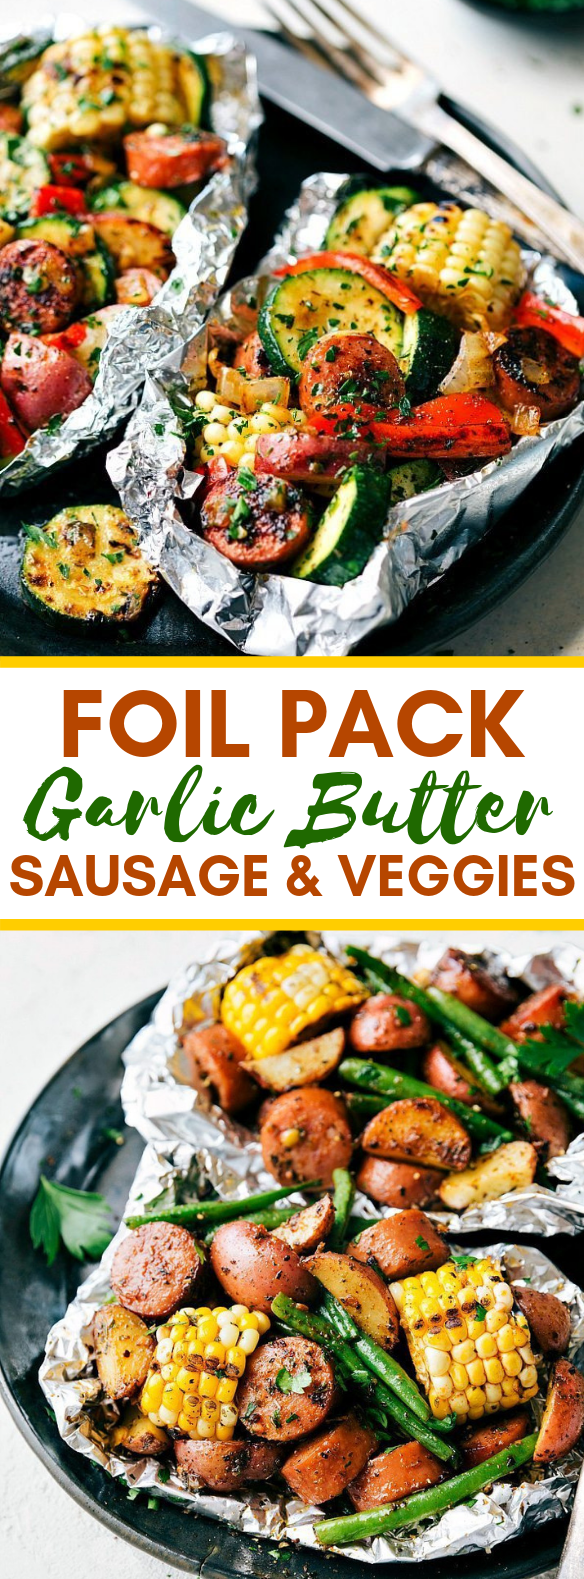 FOIL PACK GARLIC BUTTER SAUSAGE & VEGGIES #vegetarian #dinner